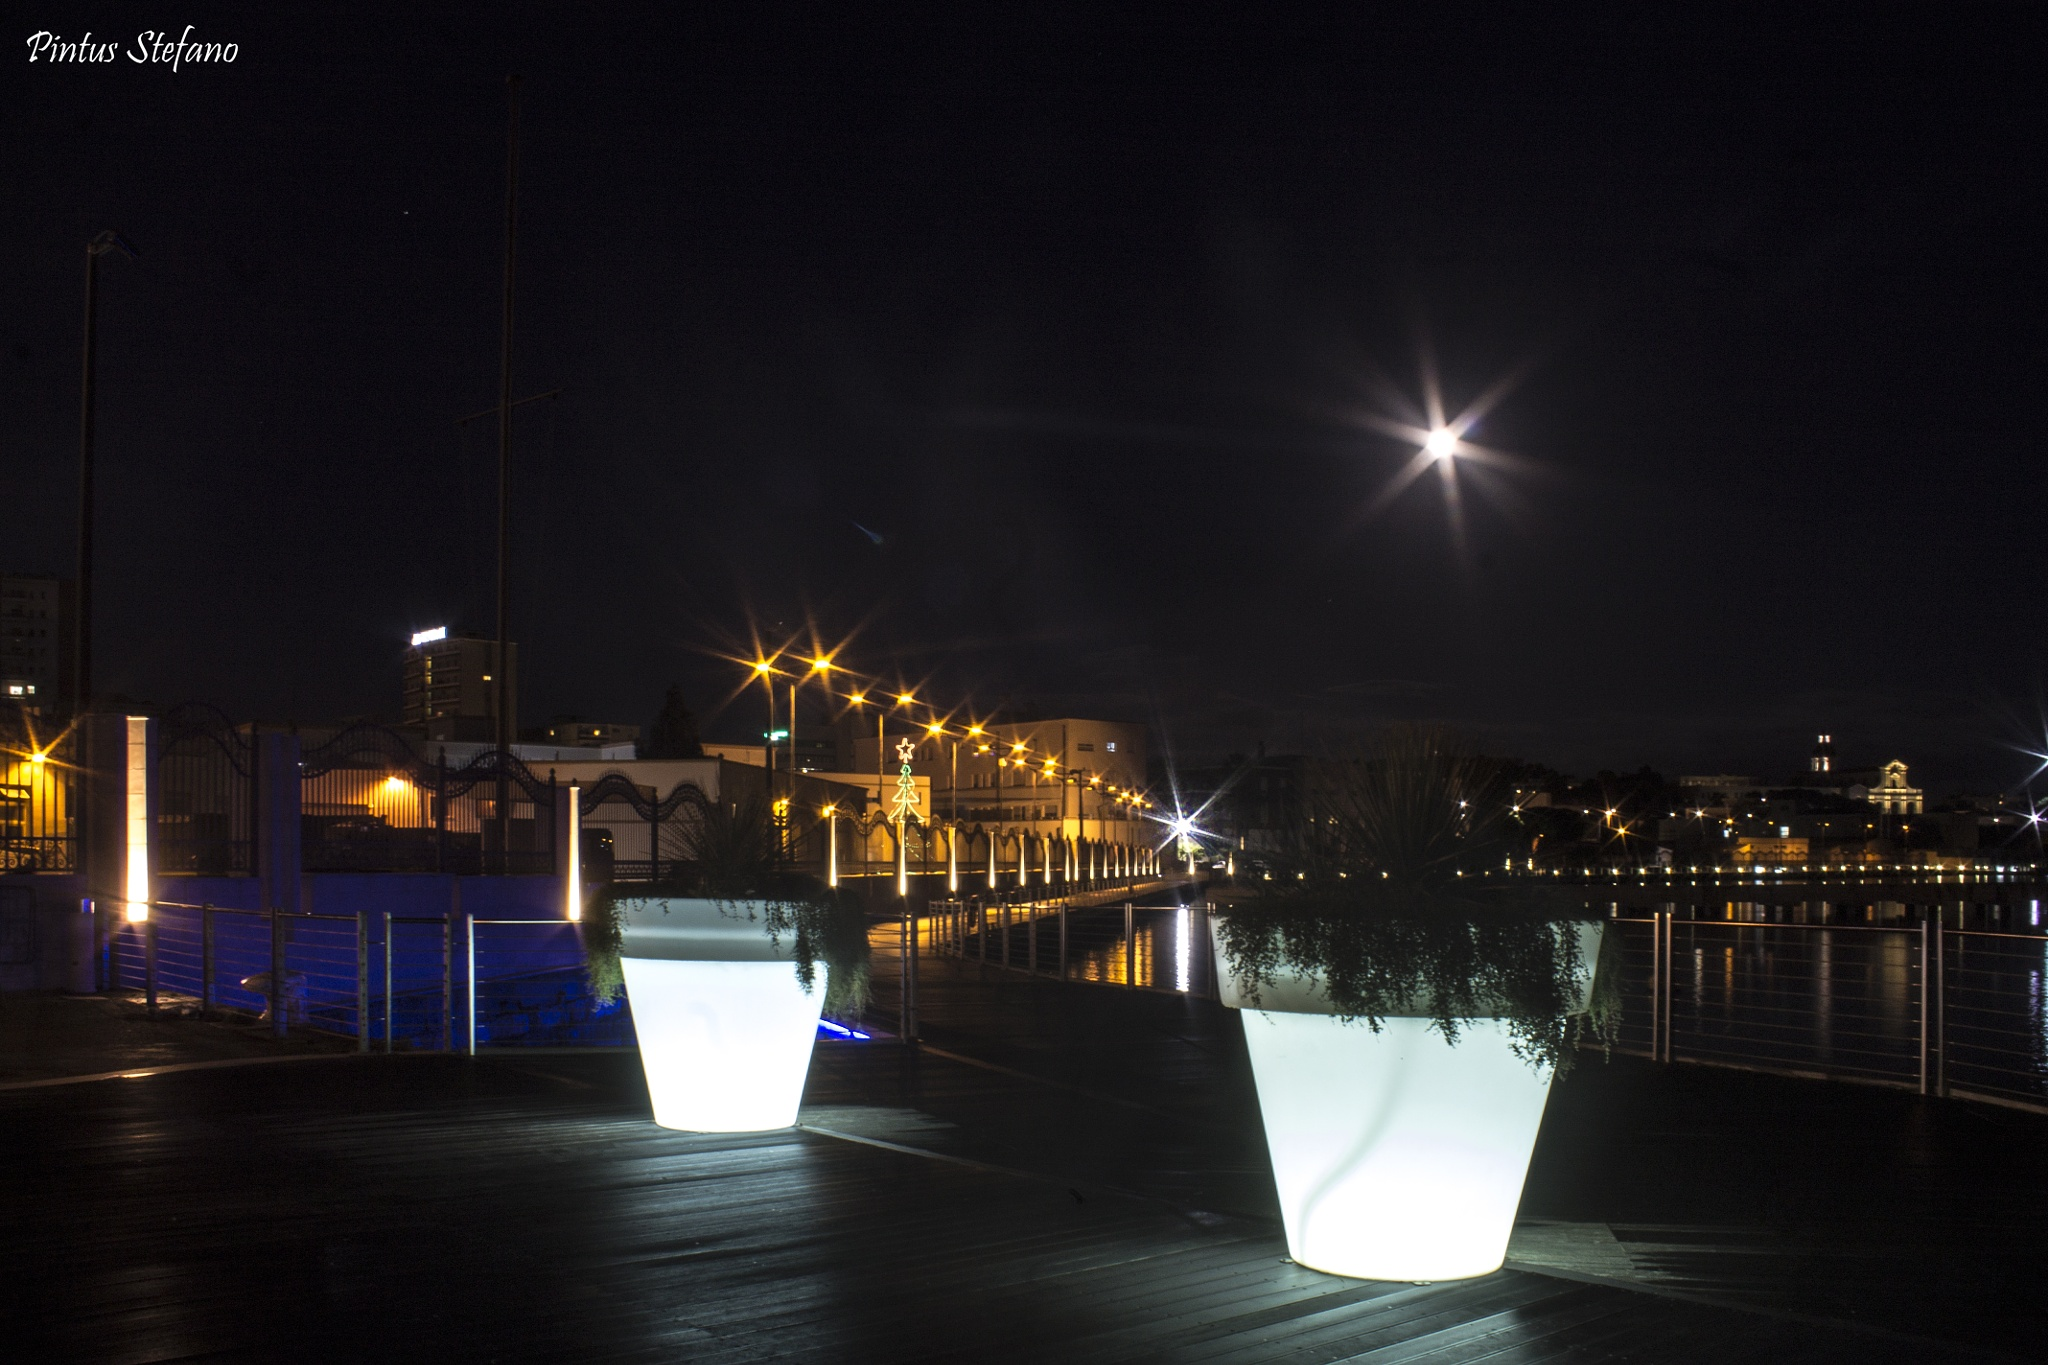 Notturno a Cagliari by pintusstefano